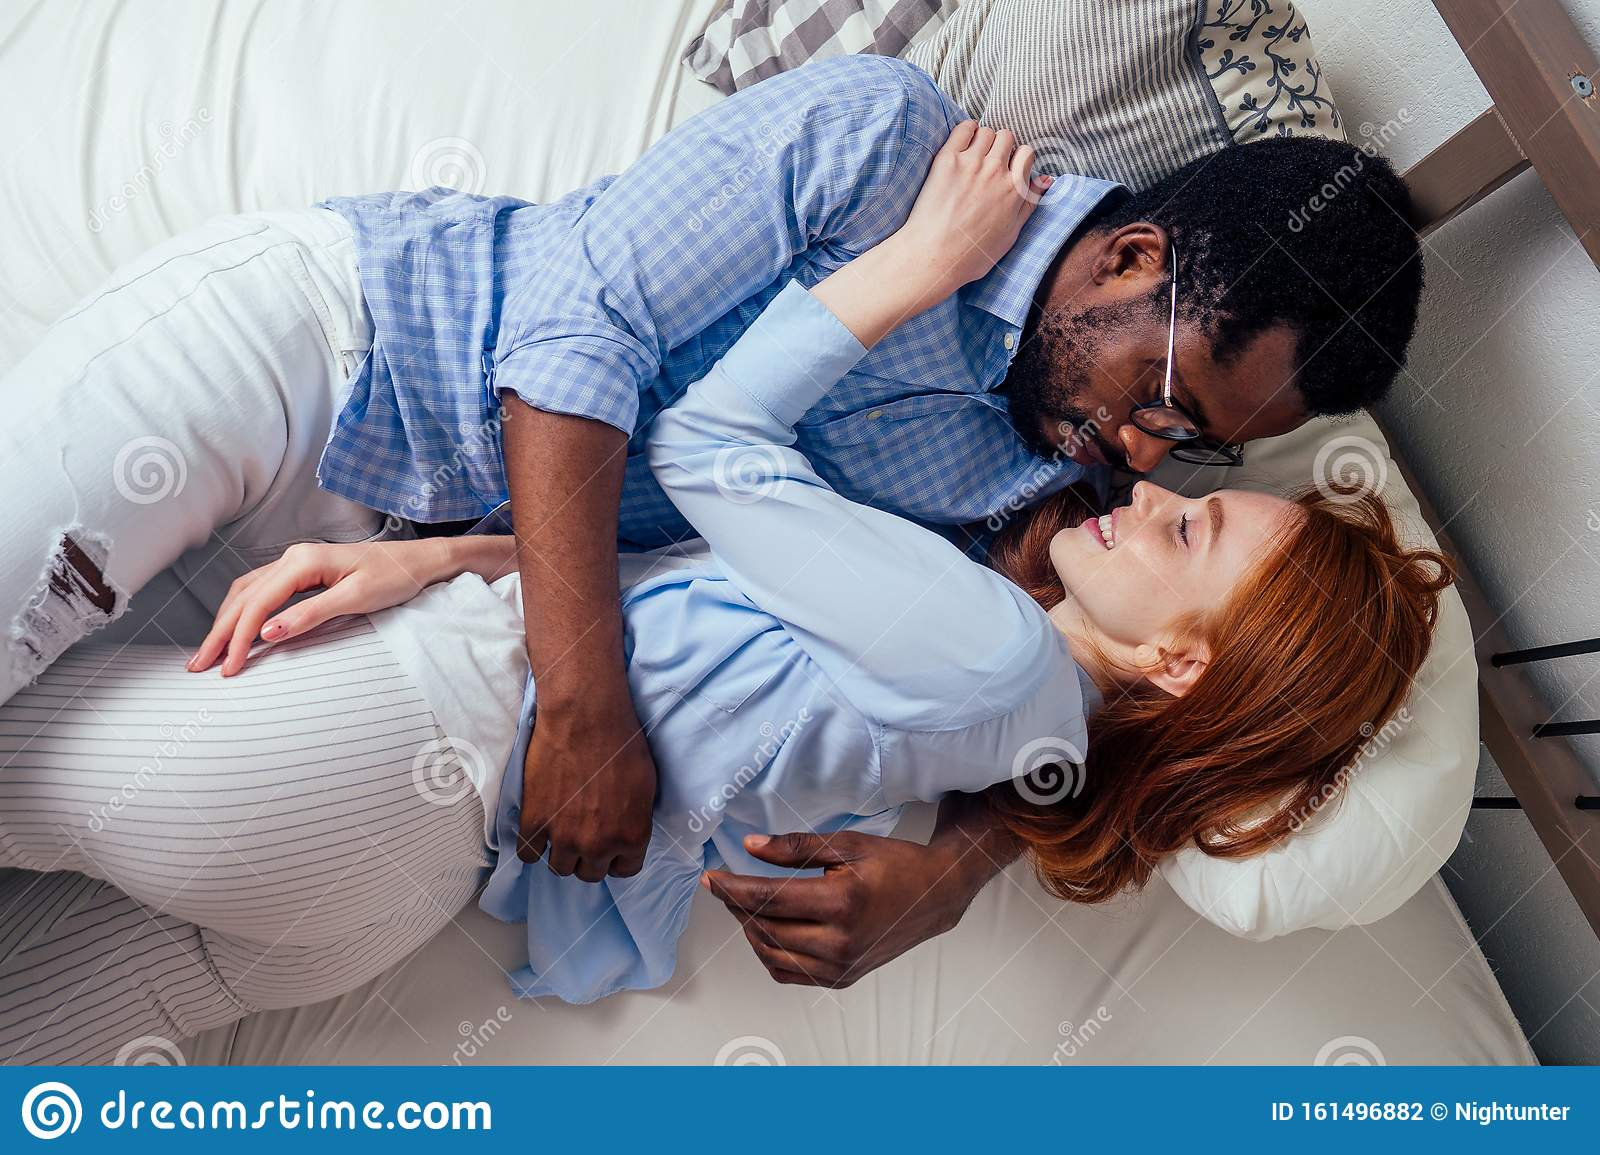 Redhaired Ginger Caucasian Happy Female And Multi Ethnic Afro Man Together Lying In Bed Bedroom Lifestyle Tolerance Stock Photo Image Of International Kiss 161496882